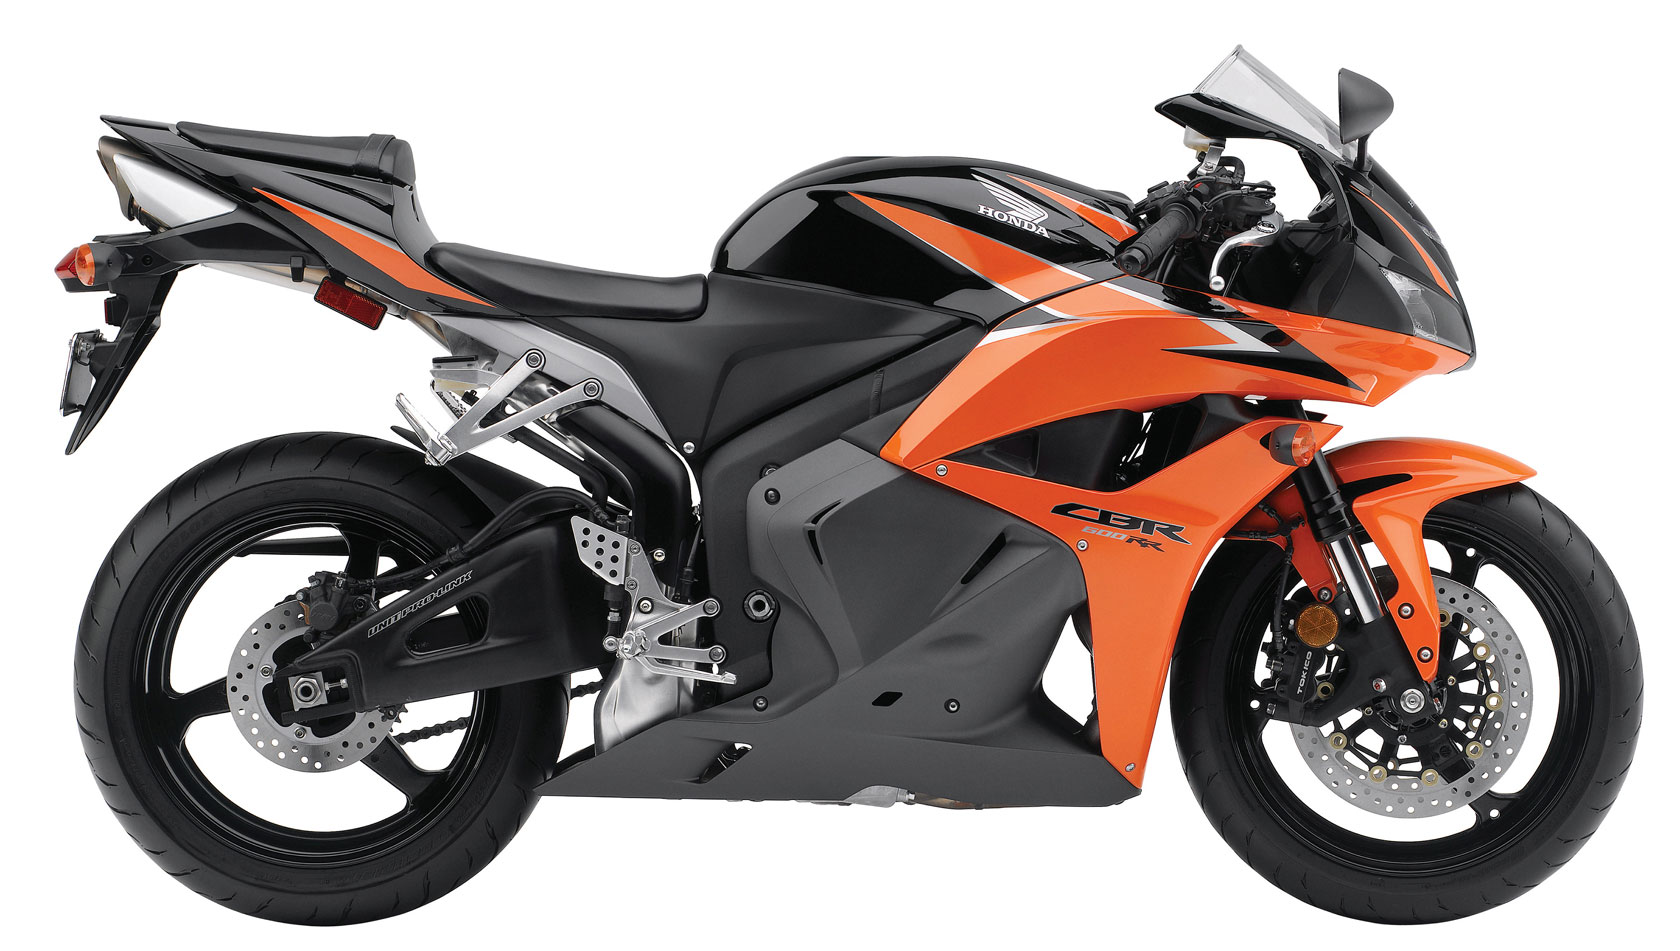 2010 Honda CBR600RR Black Orange